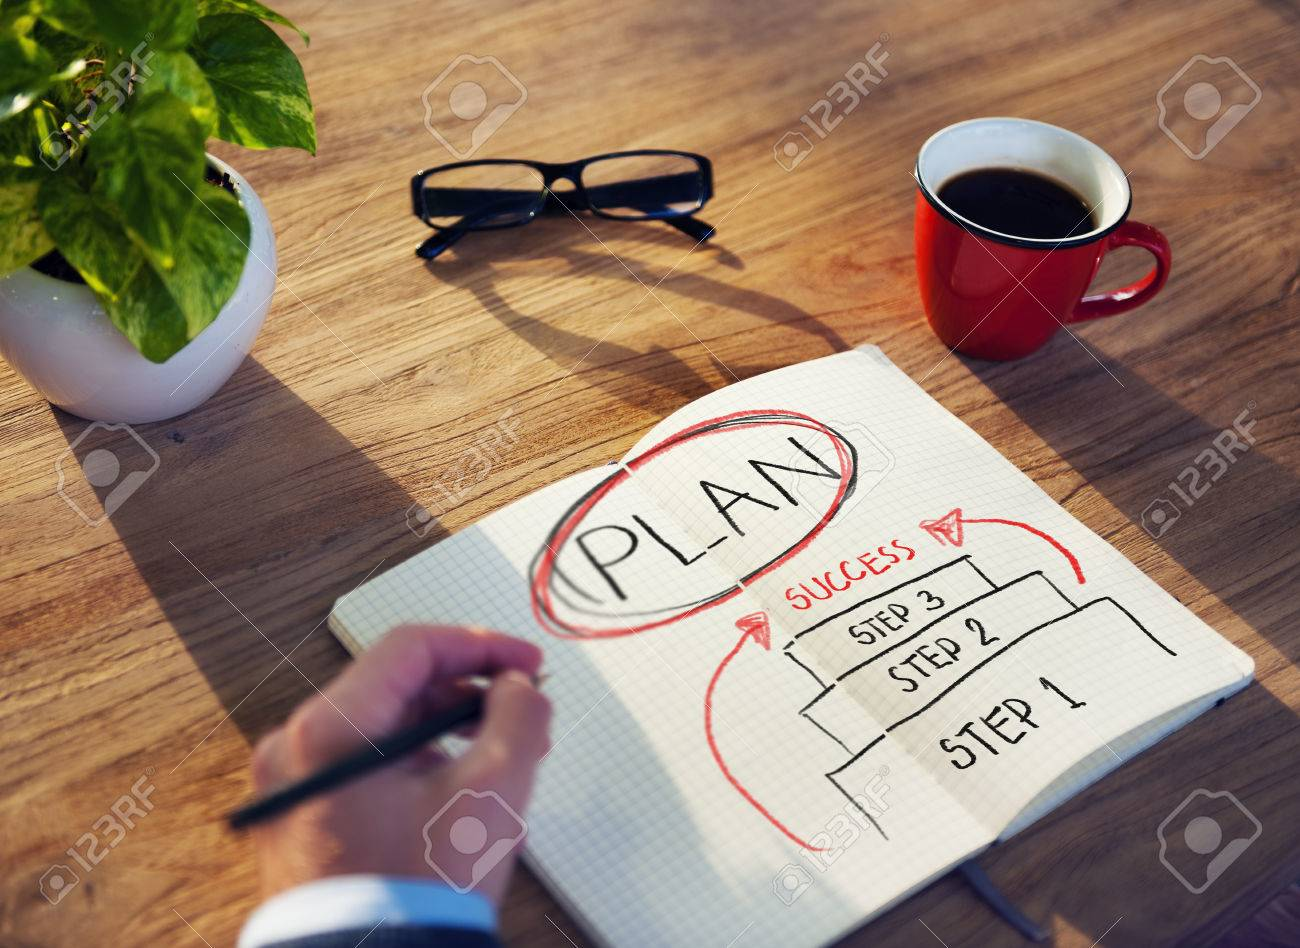 Planning a business plan